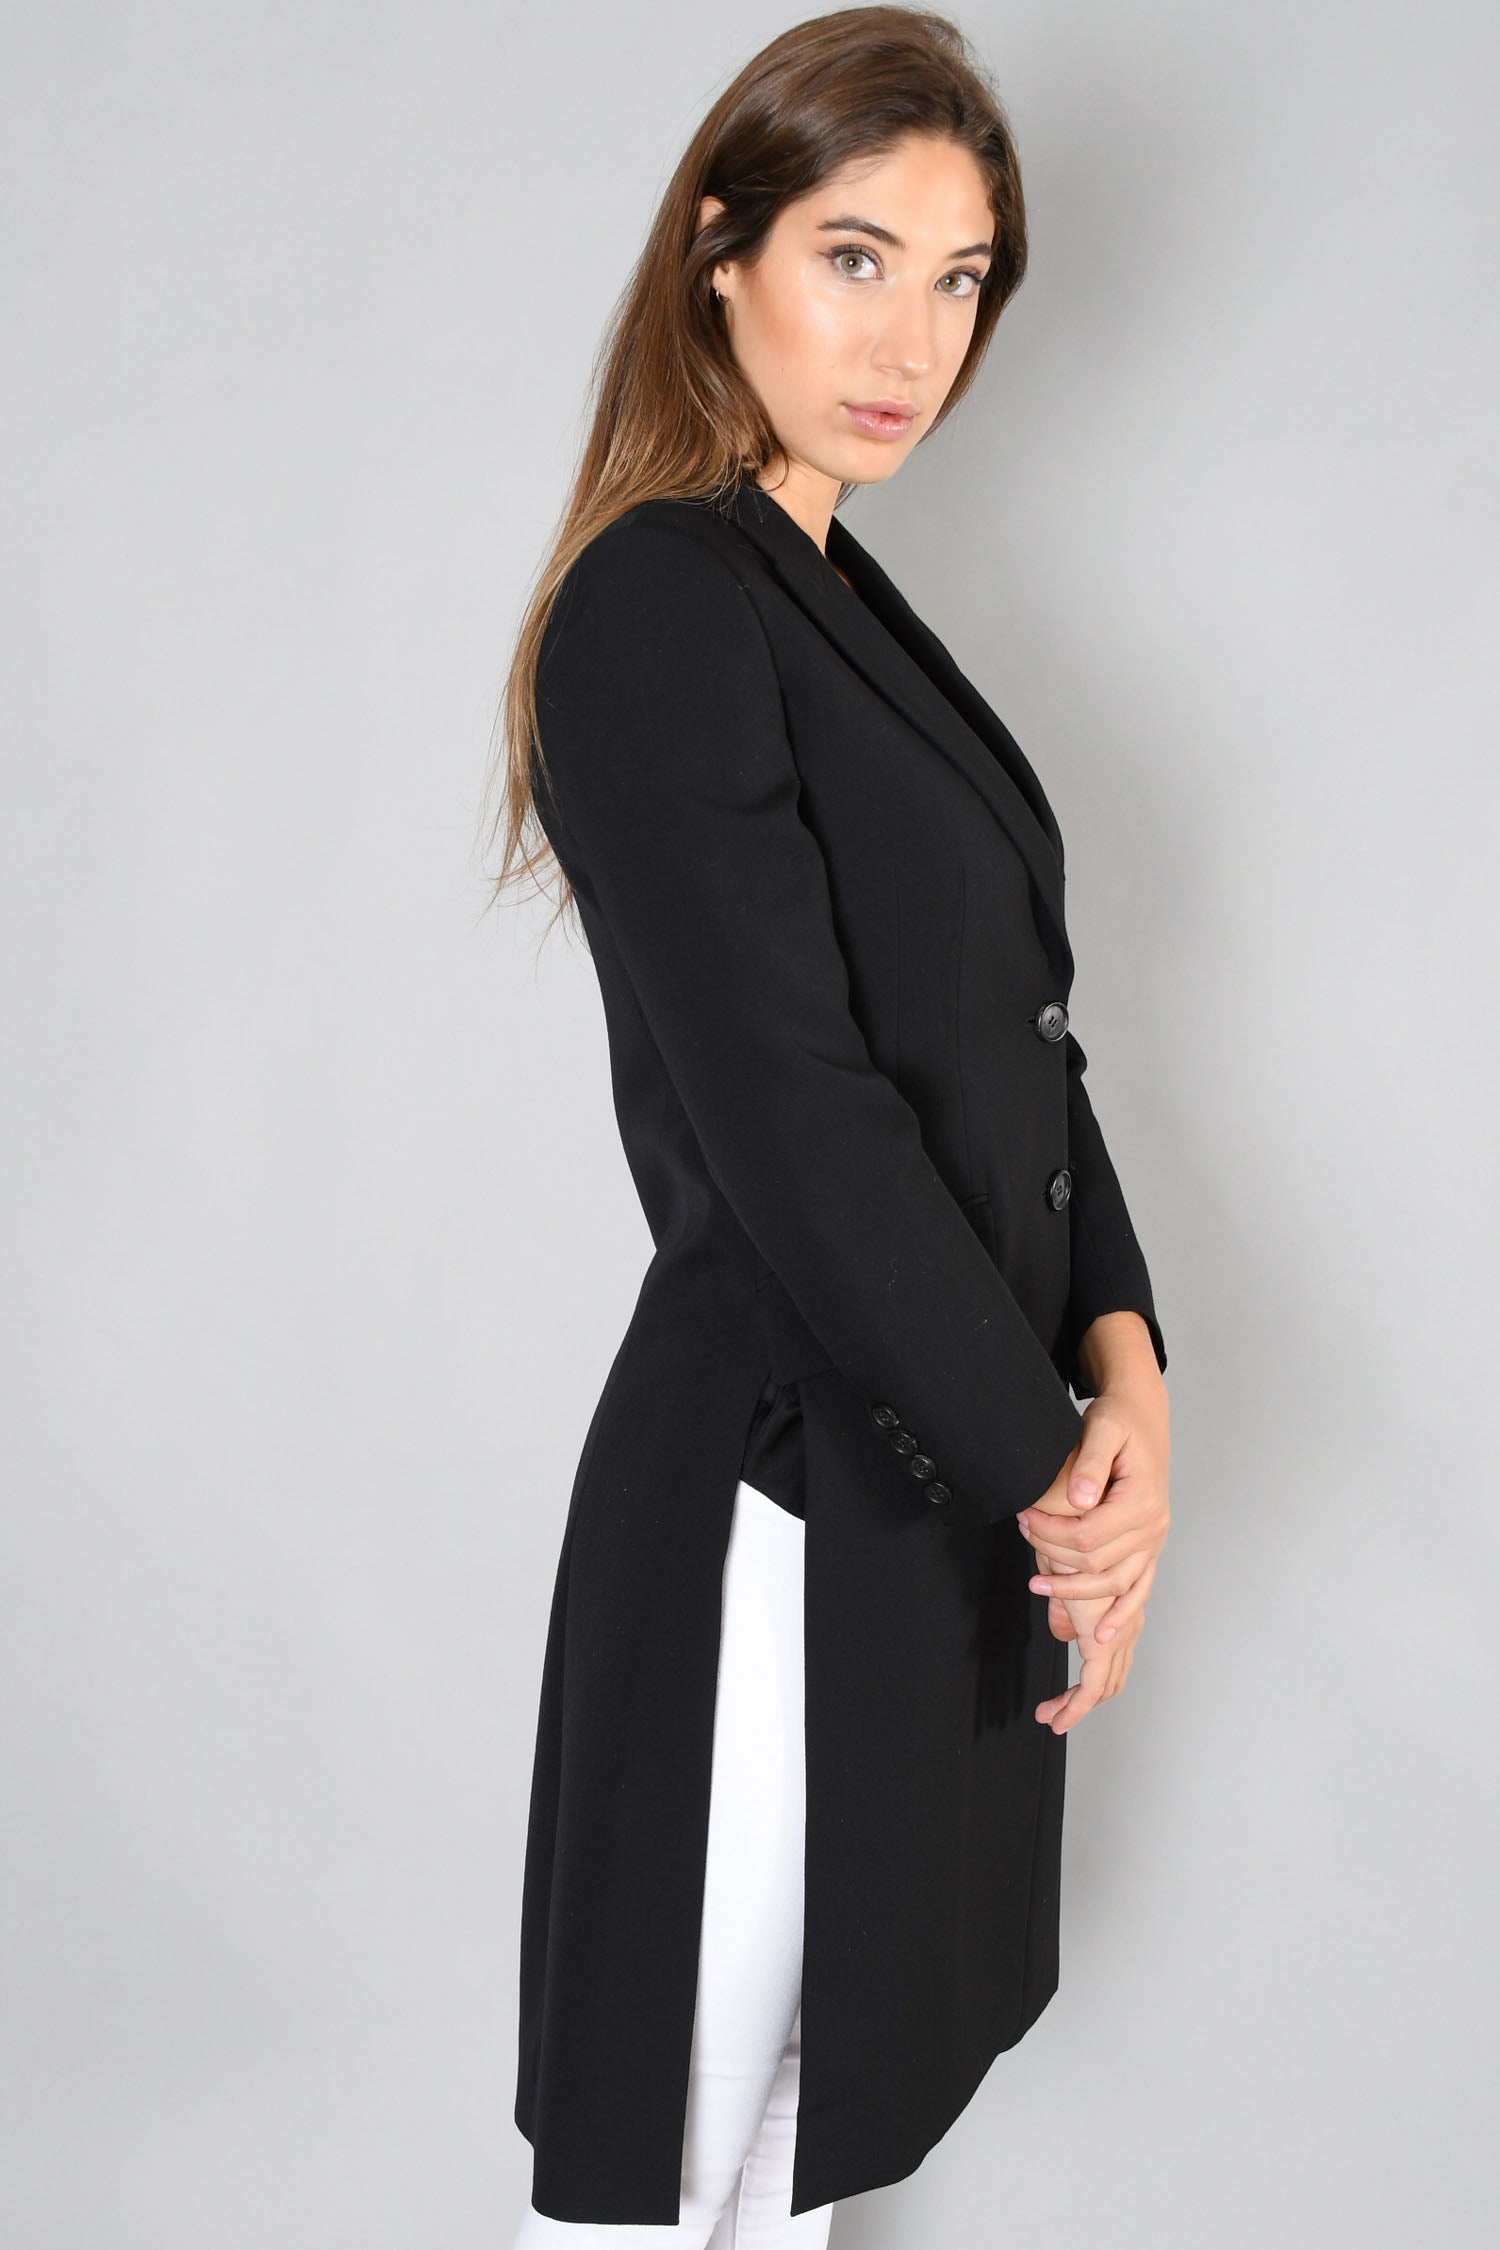 Givenchy Black Wool Coat w/ Satin Pocket Size 38